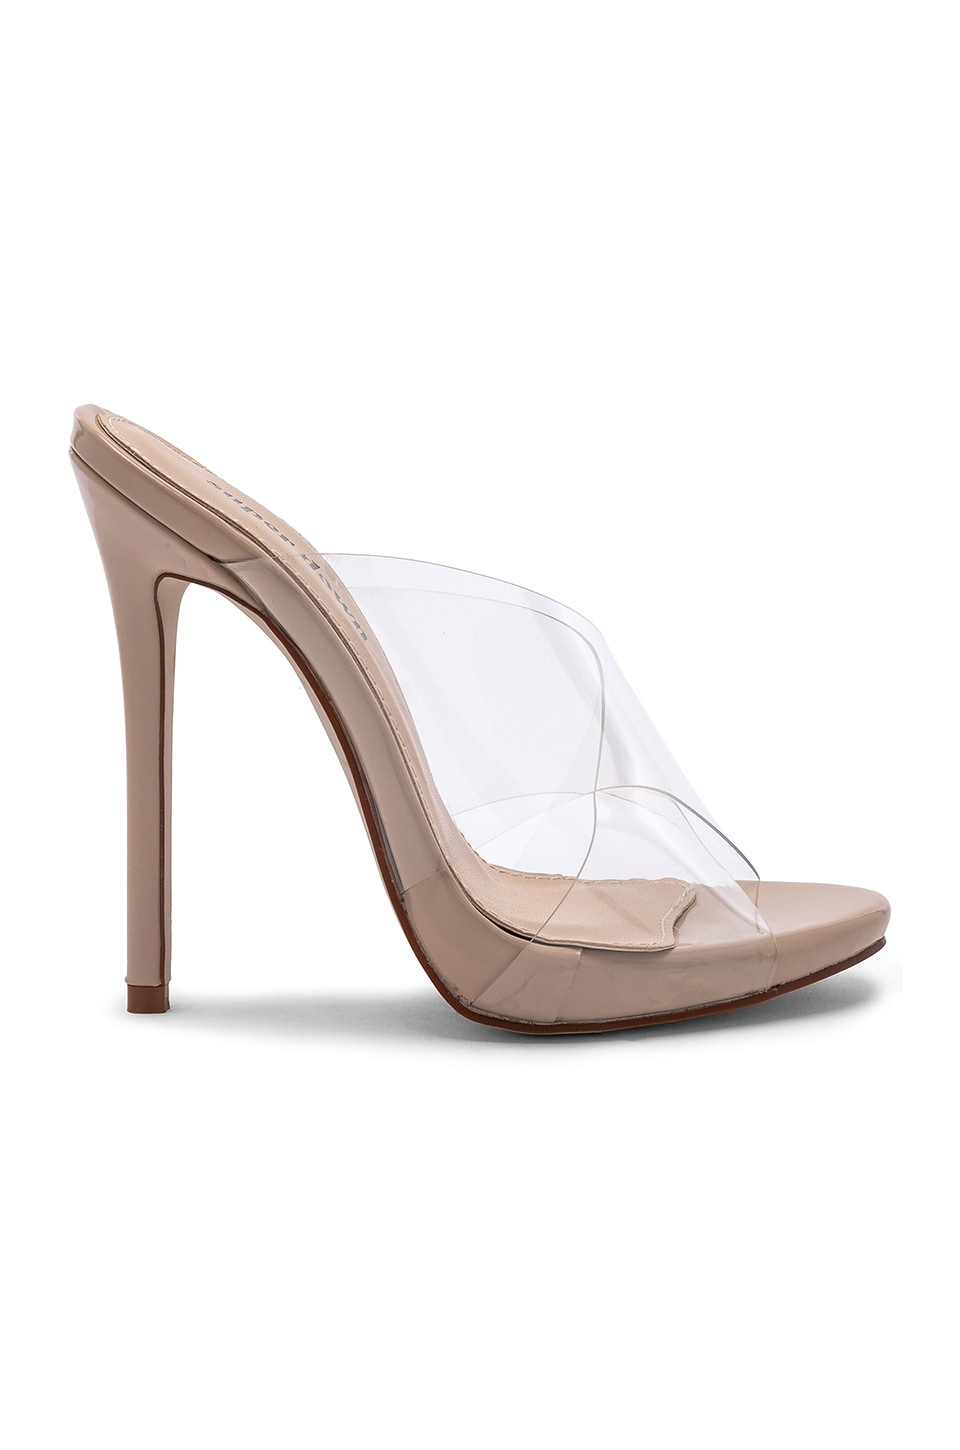 superdown Coco Heel in Nude